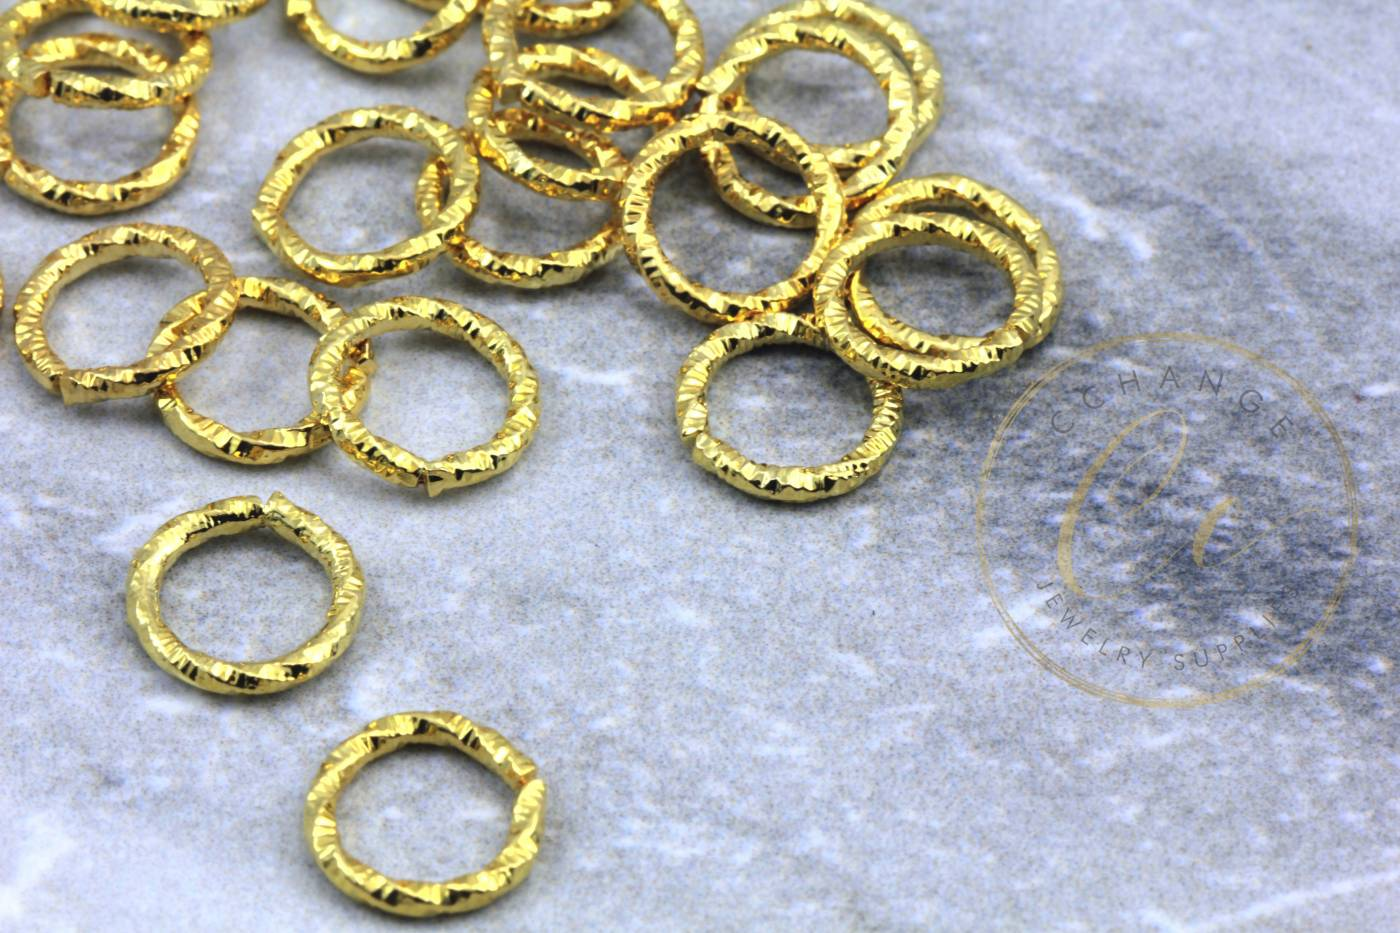 gold-plated-brass-jewelry-ring-charms.jpg